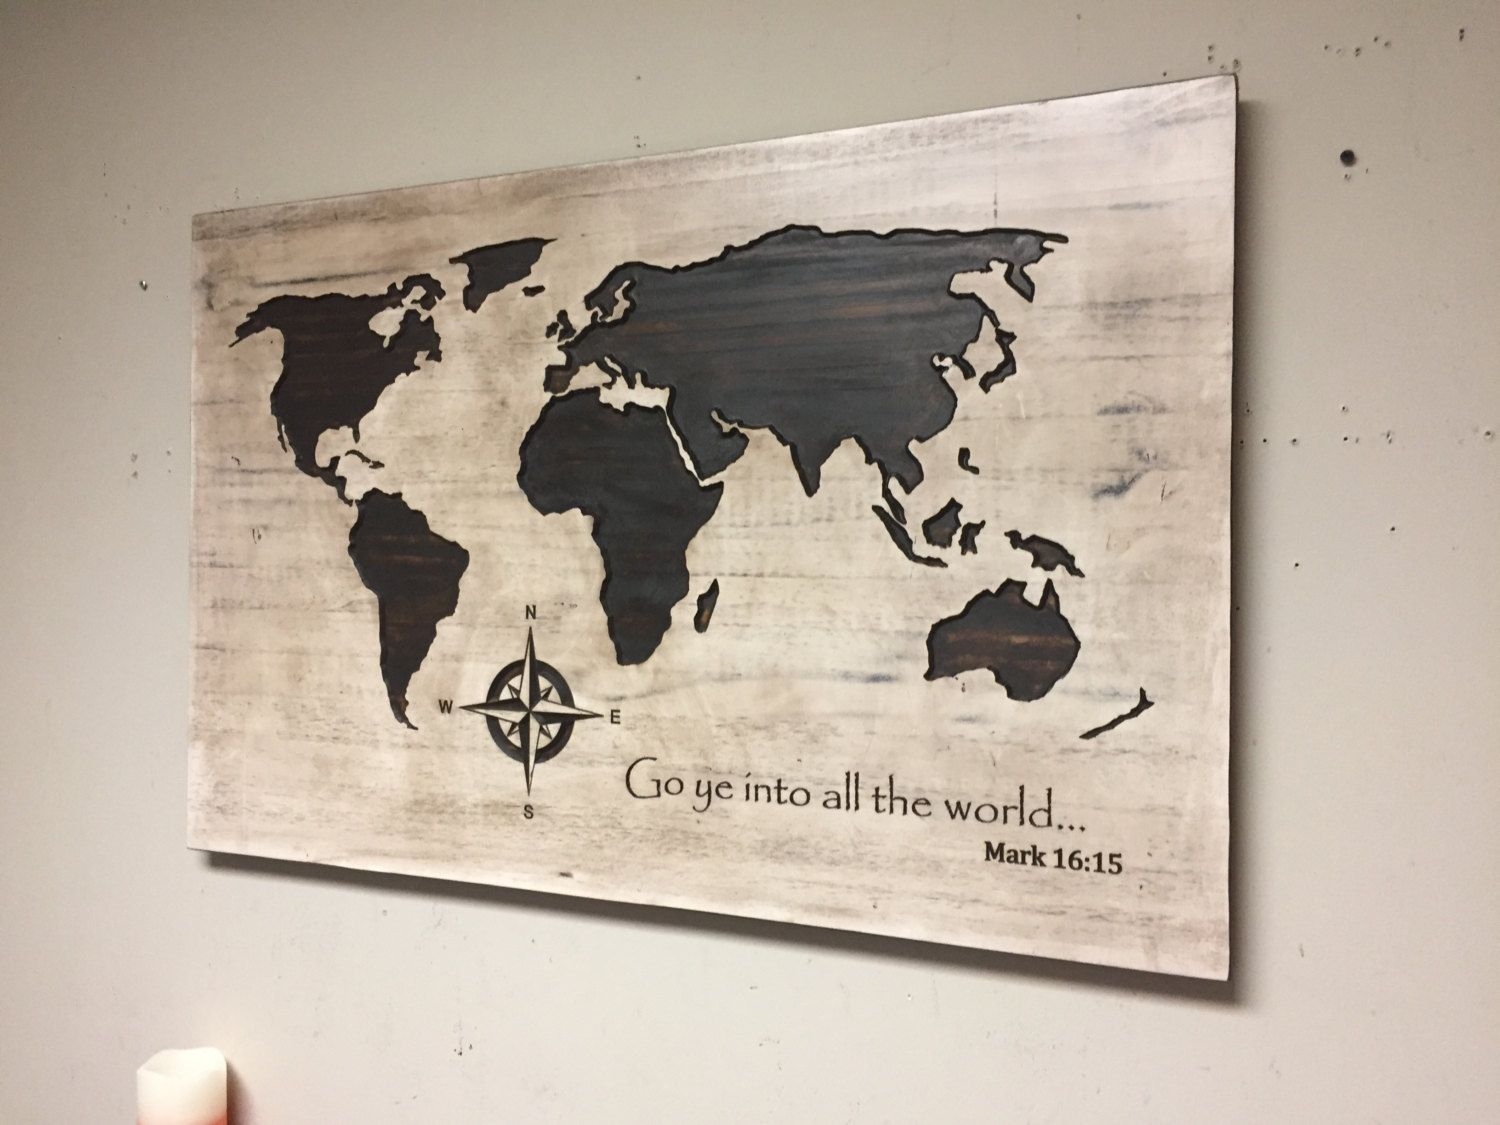 Wood wall art carved world map spiritual wall decor biblical wood wall art carved world map spiritual wall decor biblical custom bible amipublicfo Images